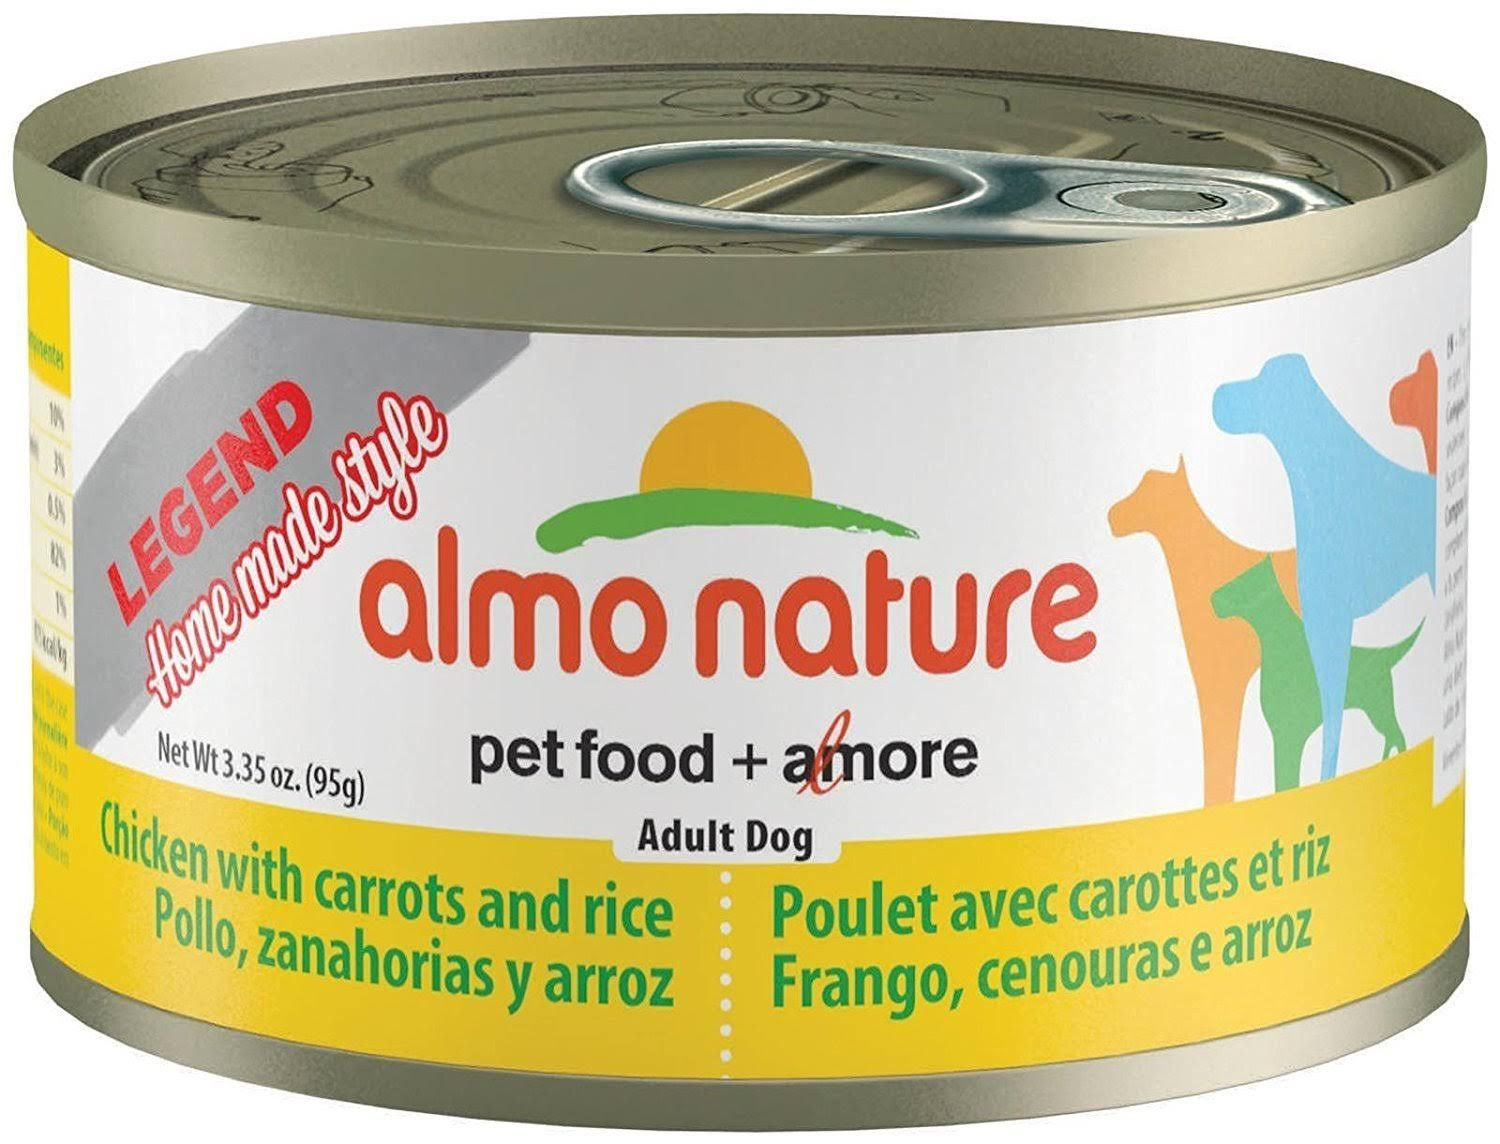 Almo Legend Canned Dog Food - Chicken & Carrot, 3.35oz